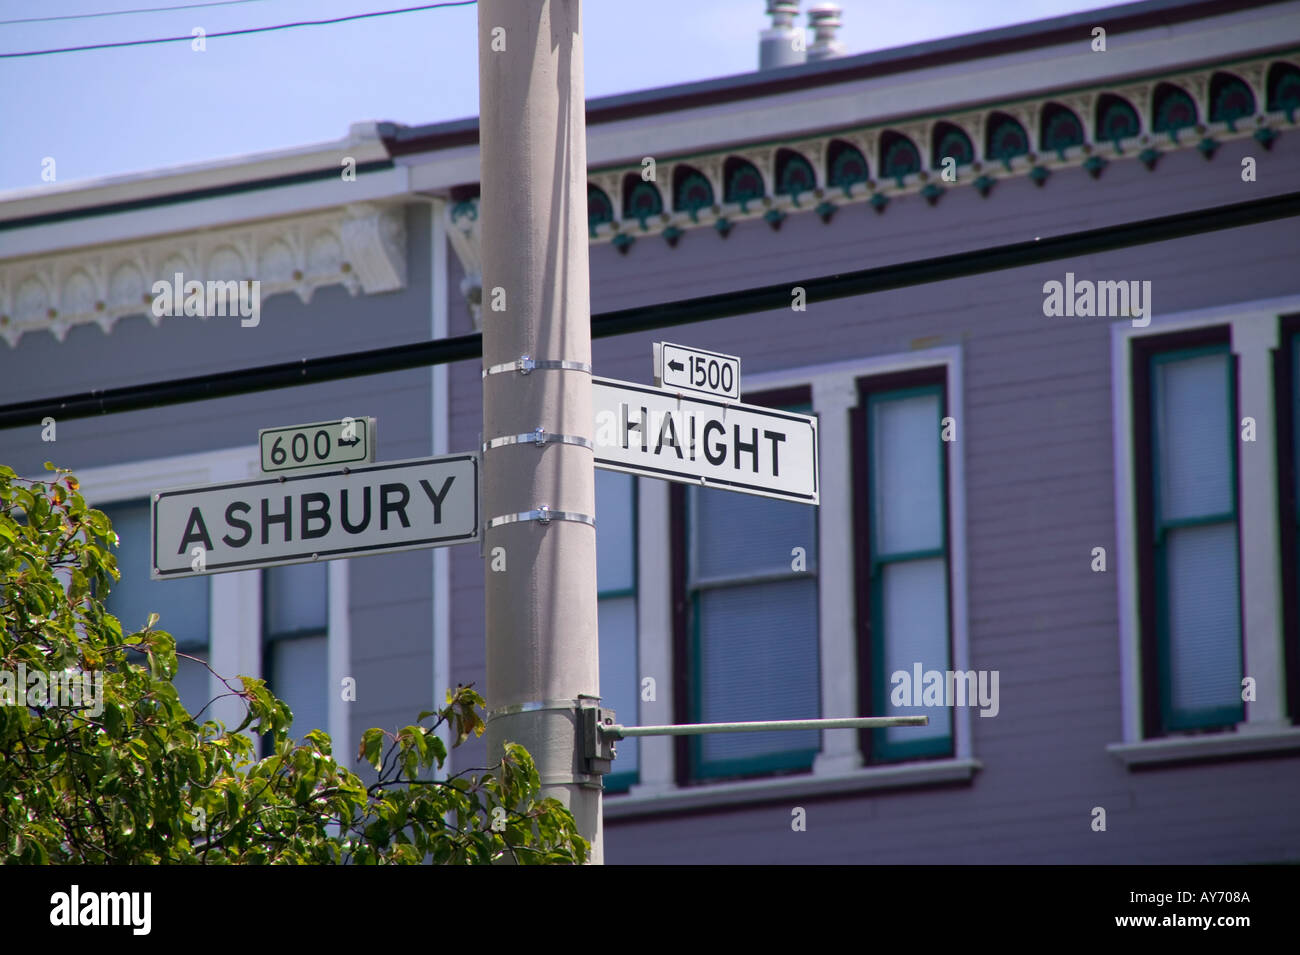 Post street san francisco stock photos post street san francisco haight ashbury san francisco california usa stock image asfbconference2016 Image collections